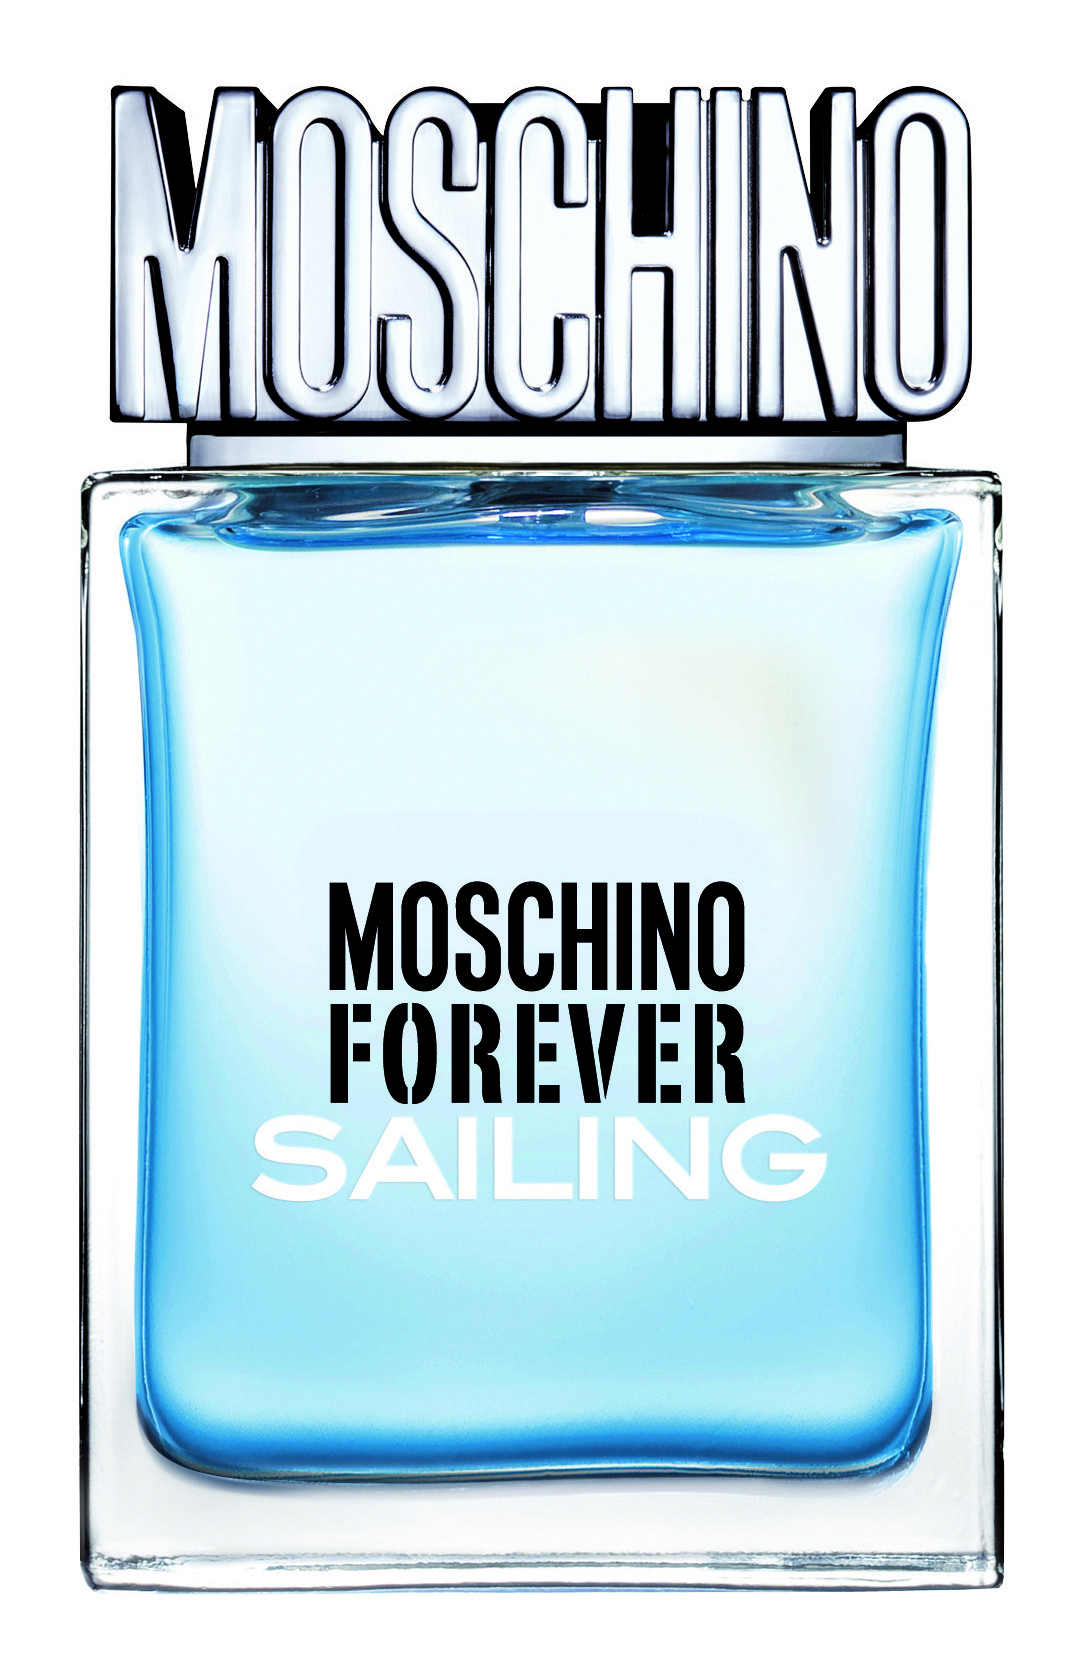 Moschino forever sailing мода москино